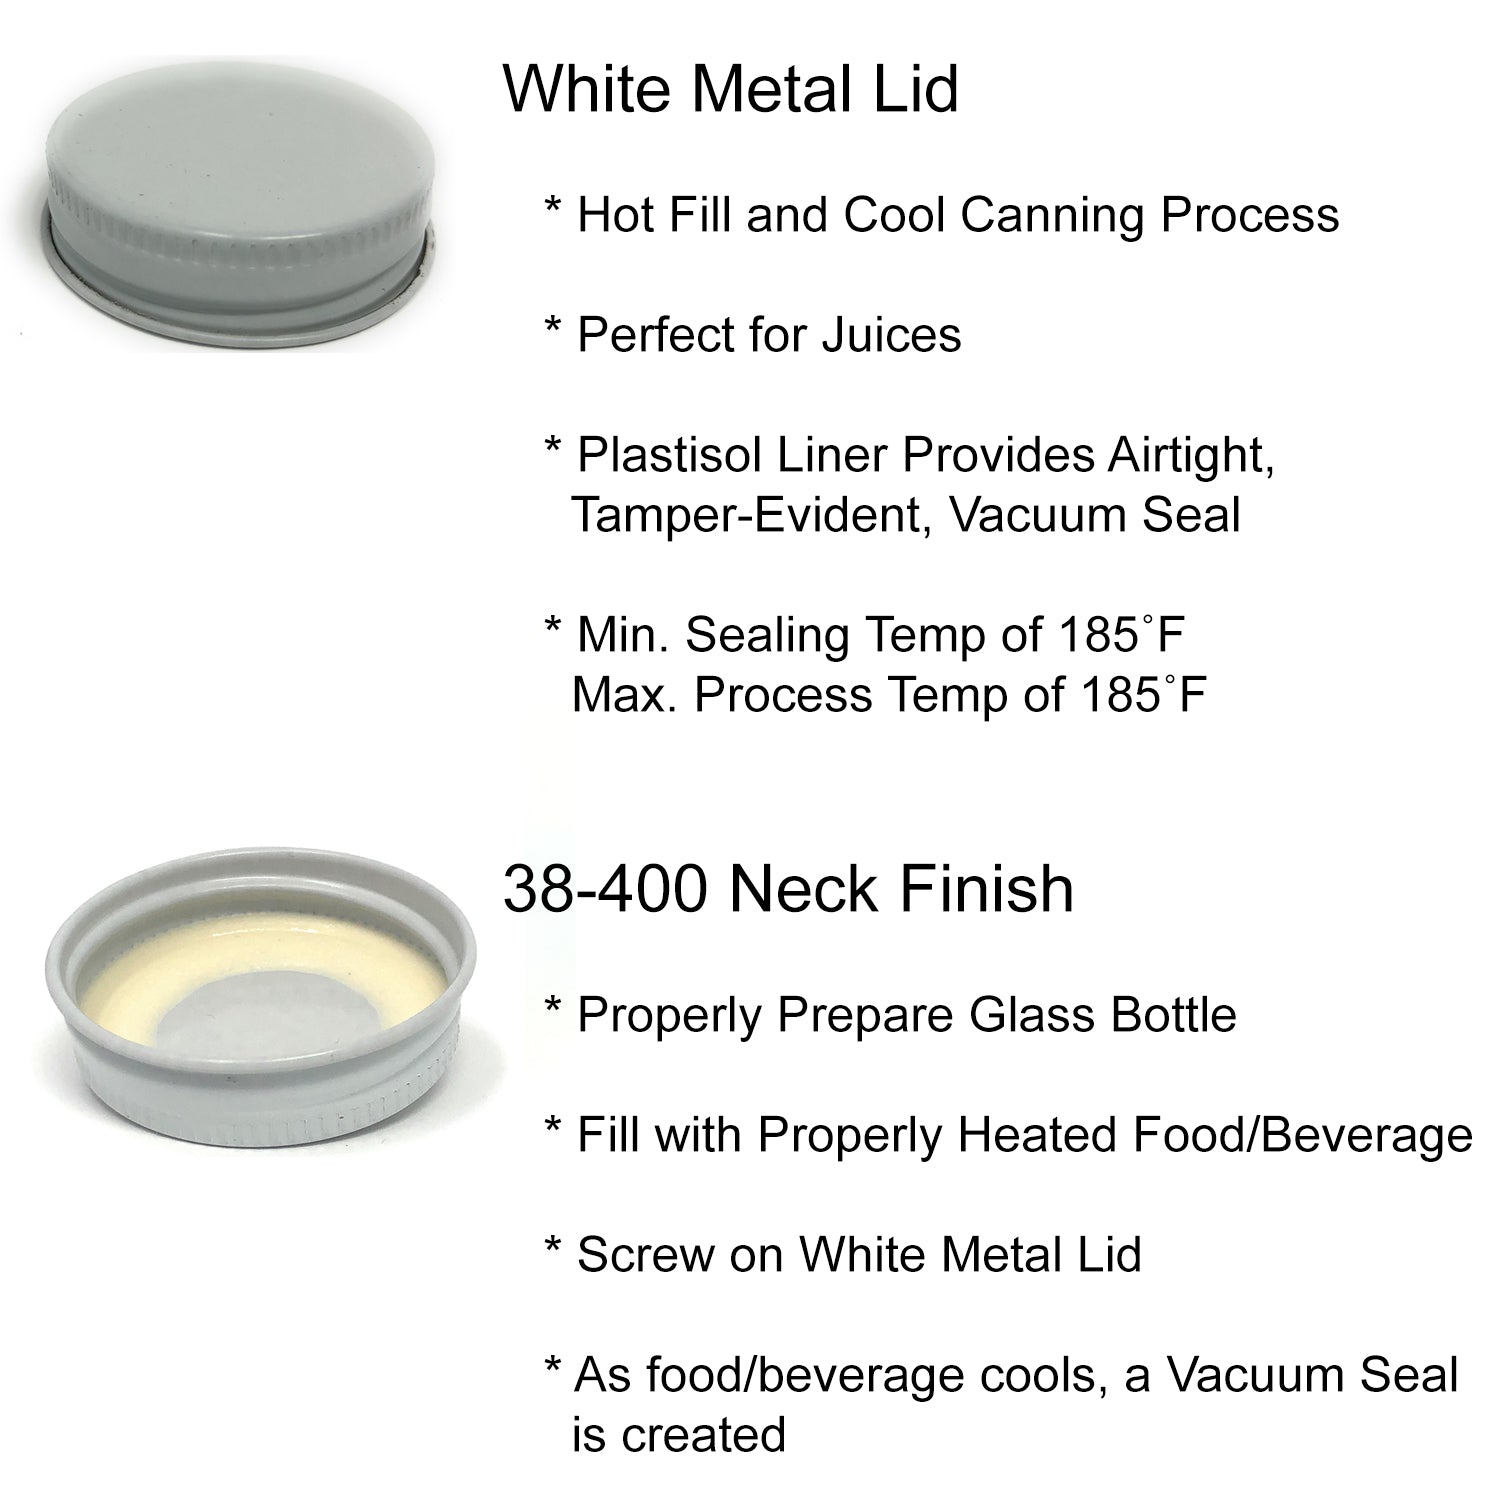 Clear Wide Mouth Glass Bottles for Beverage/Sauce with White Metal Lids and Shrink Wrap Seals, 12 oz, Pack of 12